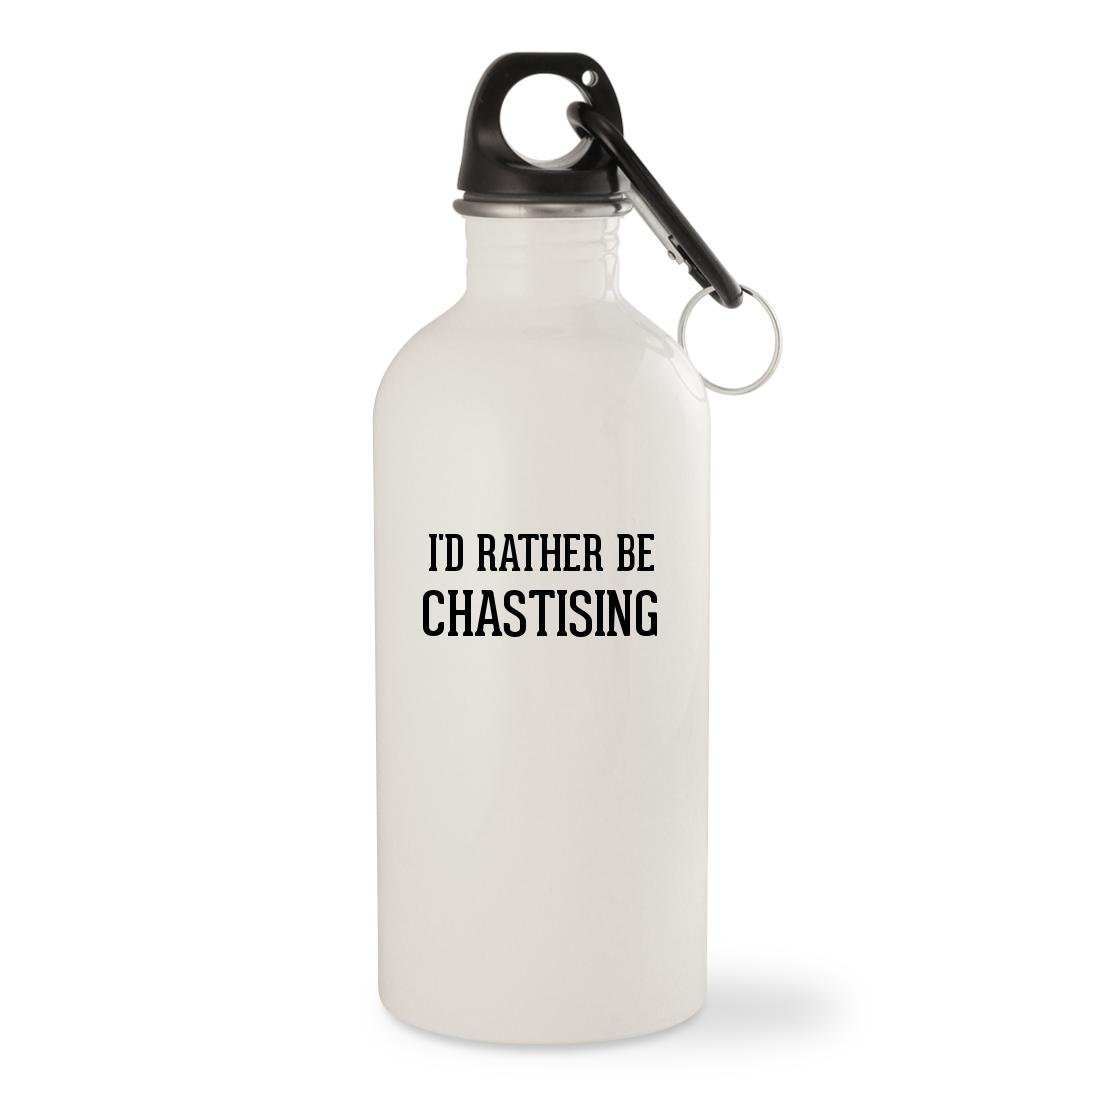 I'd Rather Be CHASTISING - White 20oz Stainless Steel Water Bottle with Carabiner